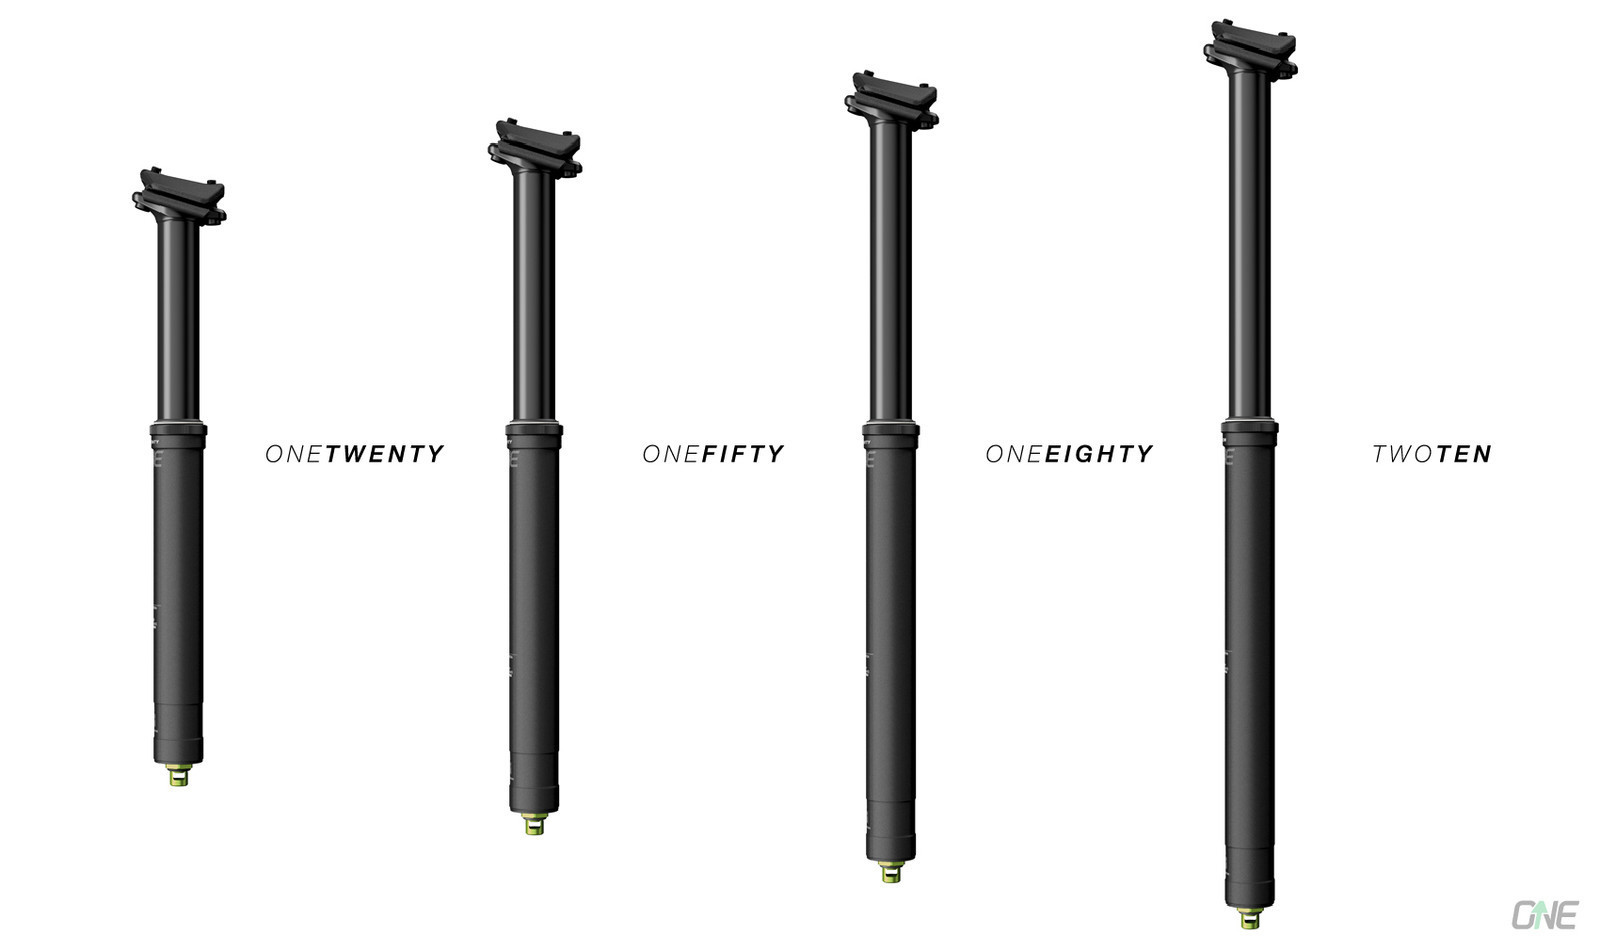 100 to 210mm of Travel - New OneUp Droppers in a Length for Every Rider